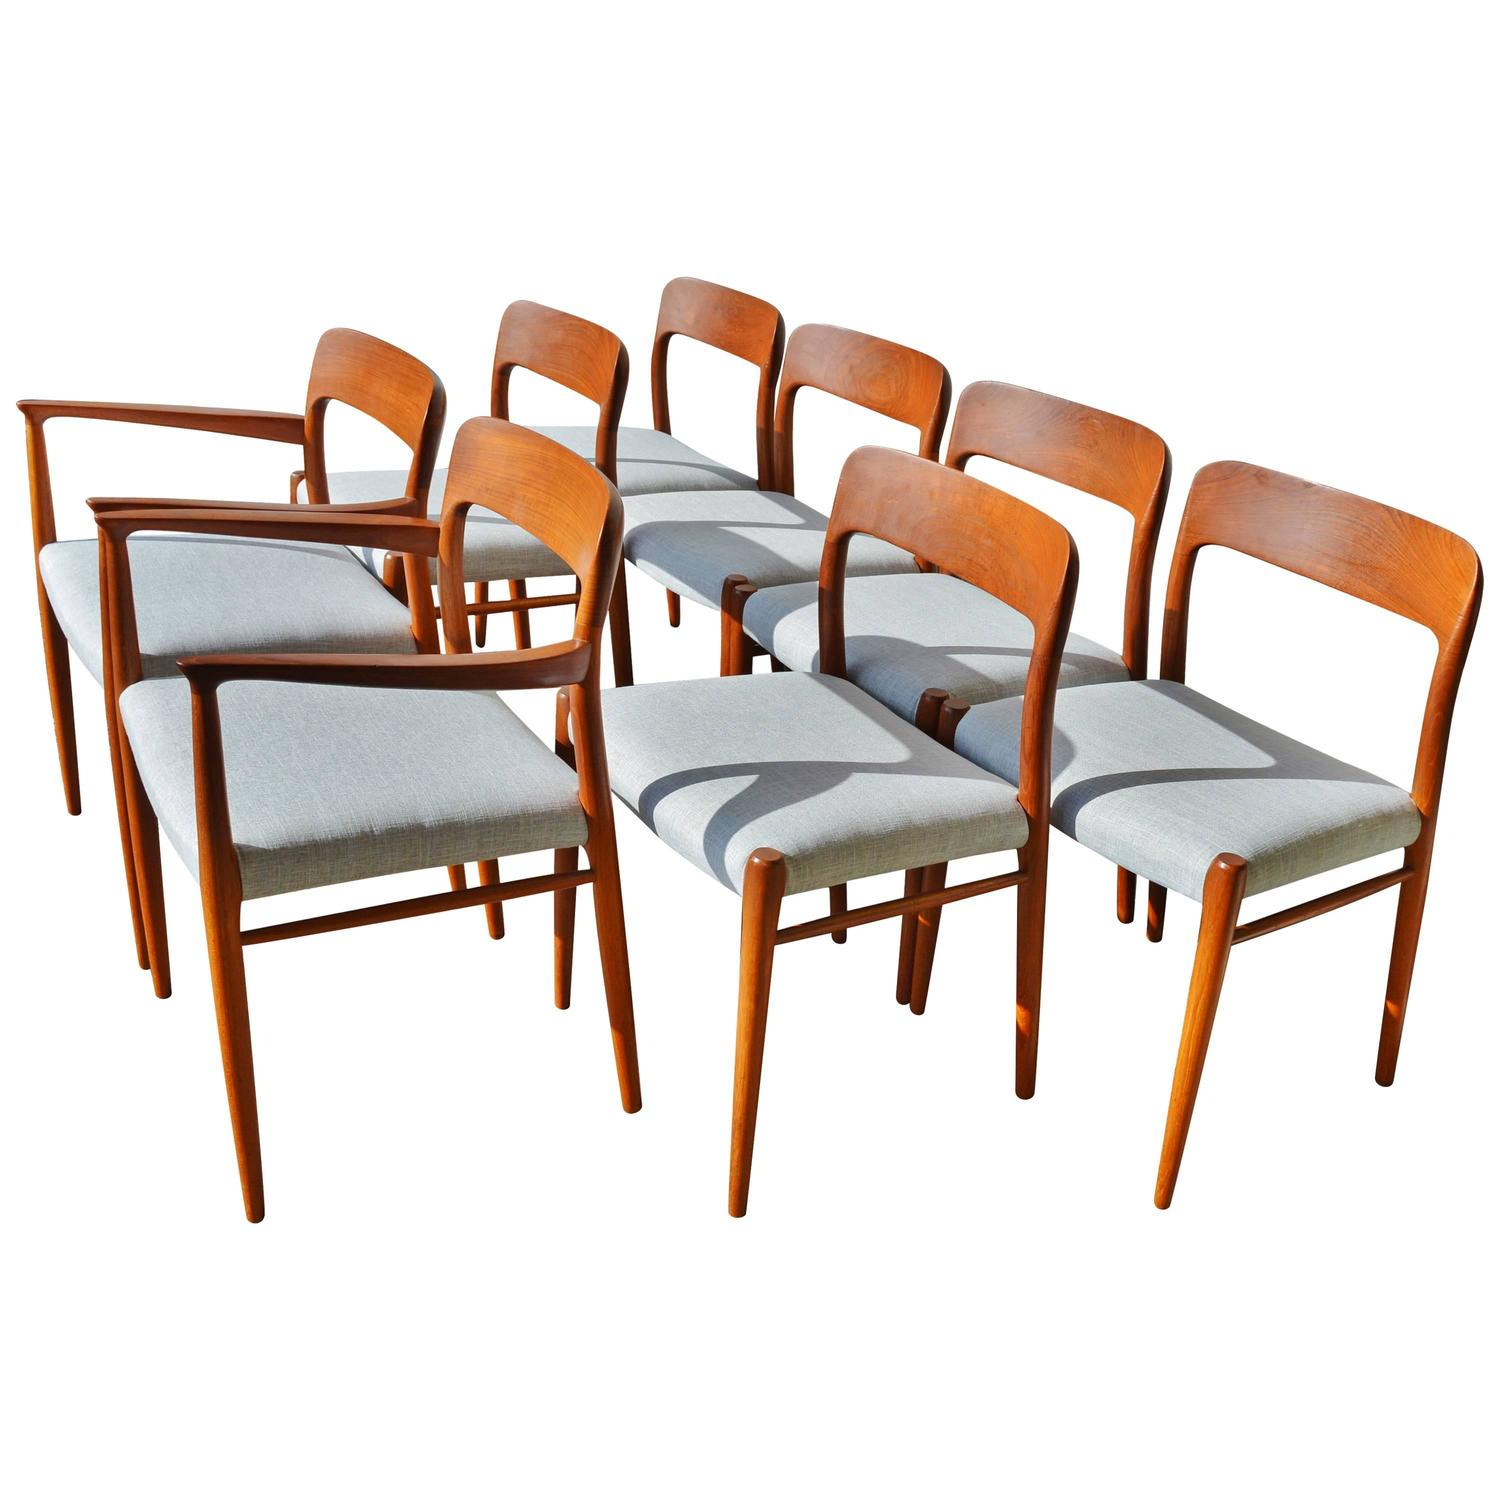 Niels M Ller Model 75 Reupholstered Teak Dining Chairs At 1stdibs